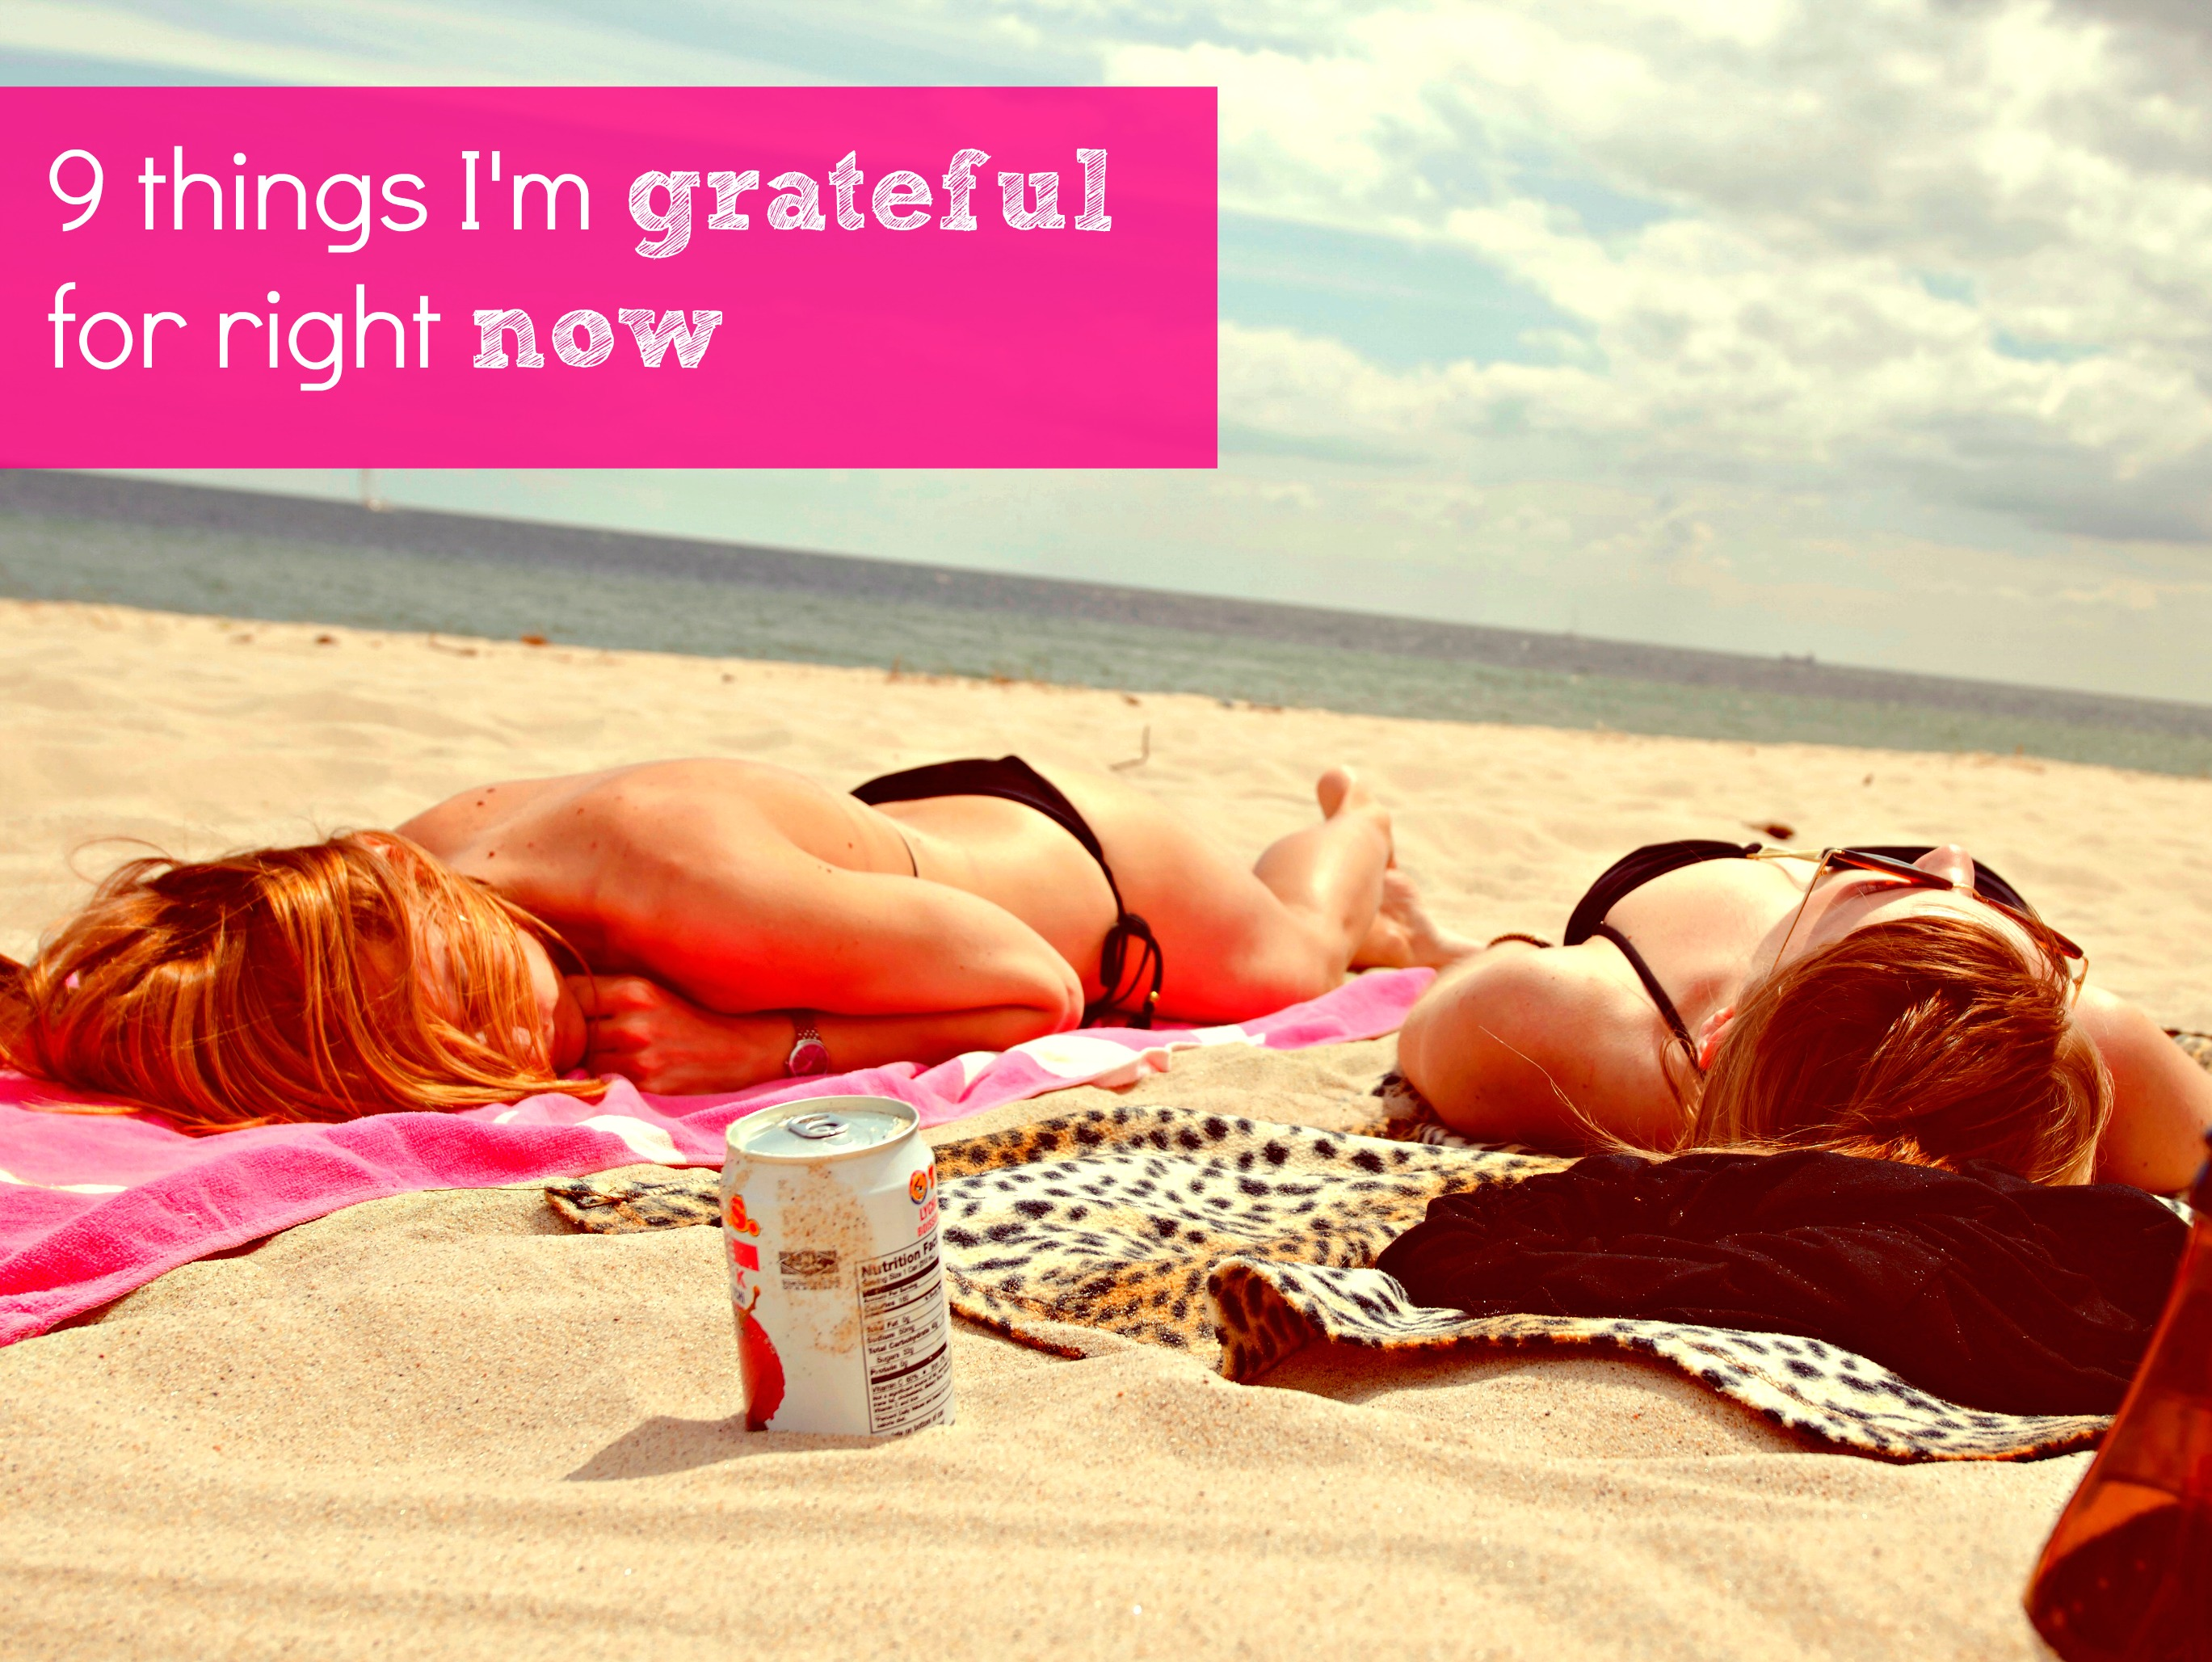 9 things I'm grateful for right now